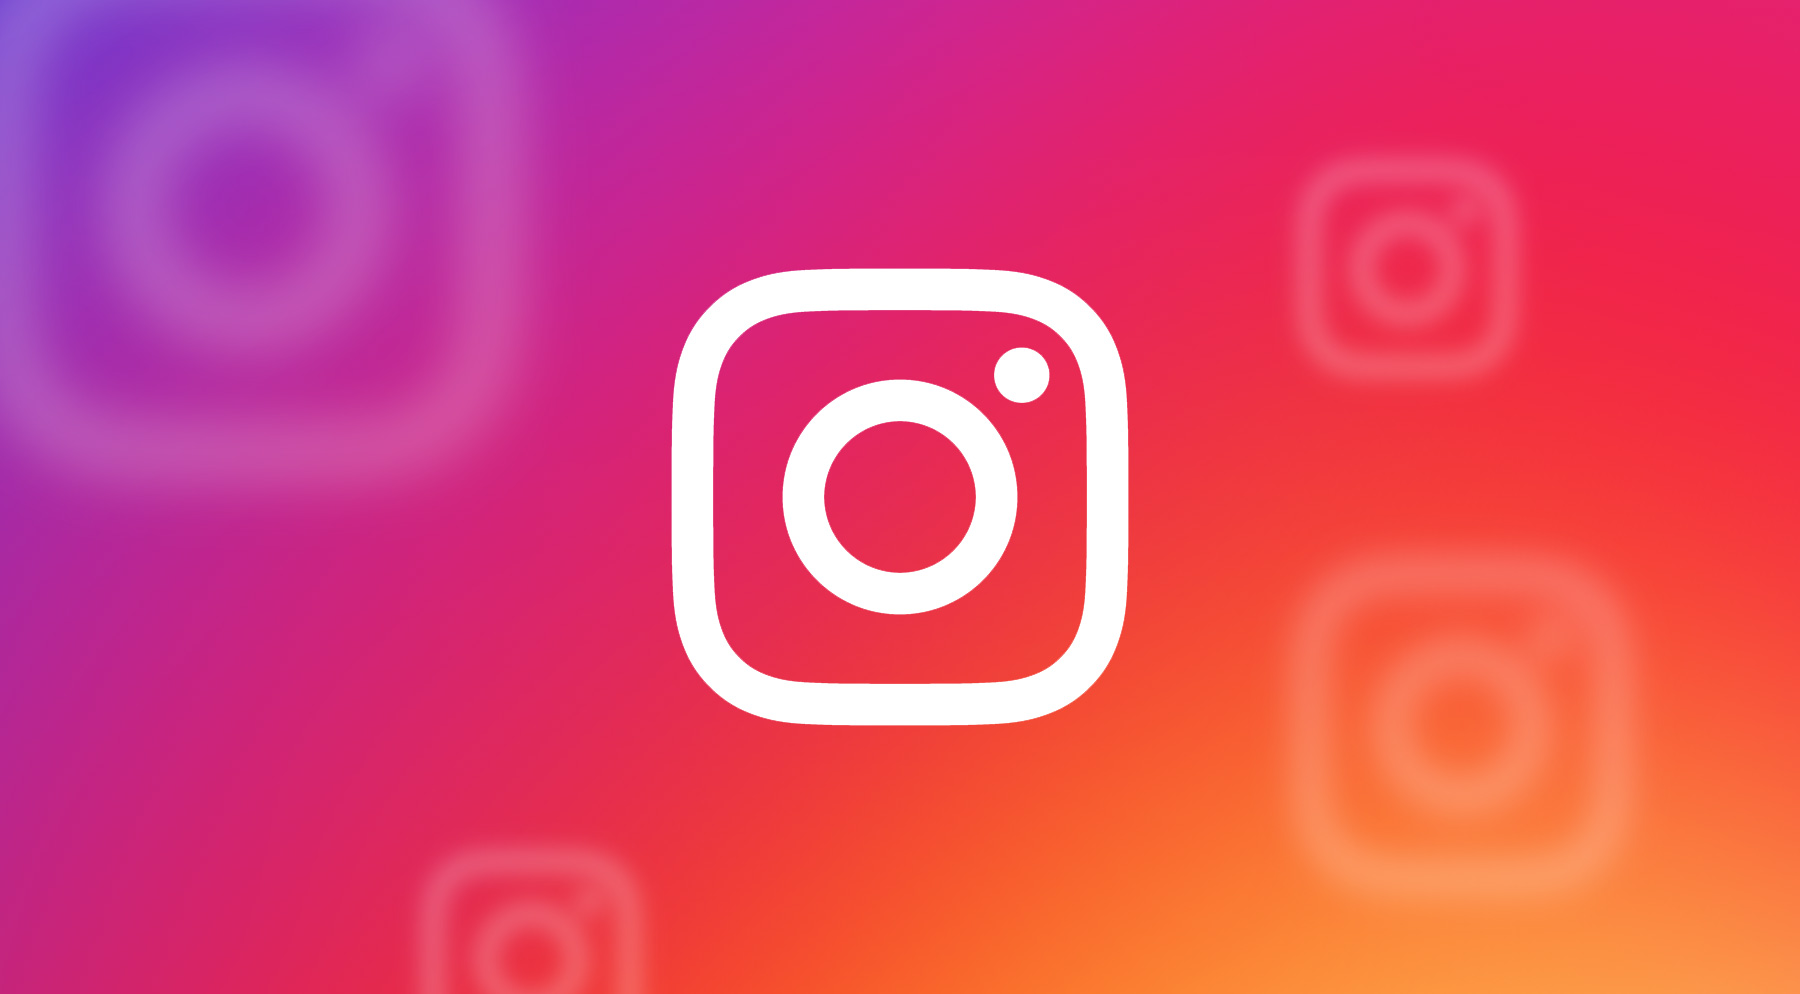 951 proven tips to hack instagram account and password 2018 951 proven tips to hack instagram account and password 2018 complete guide ccuart Image collections